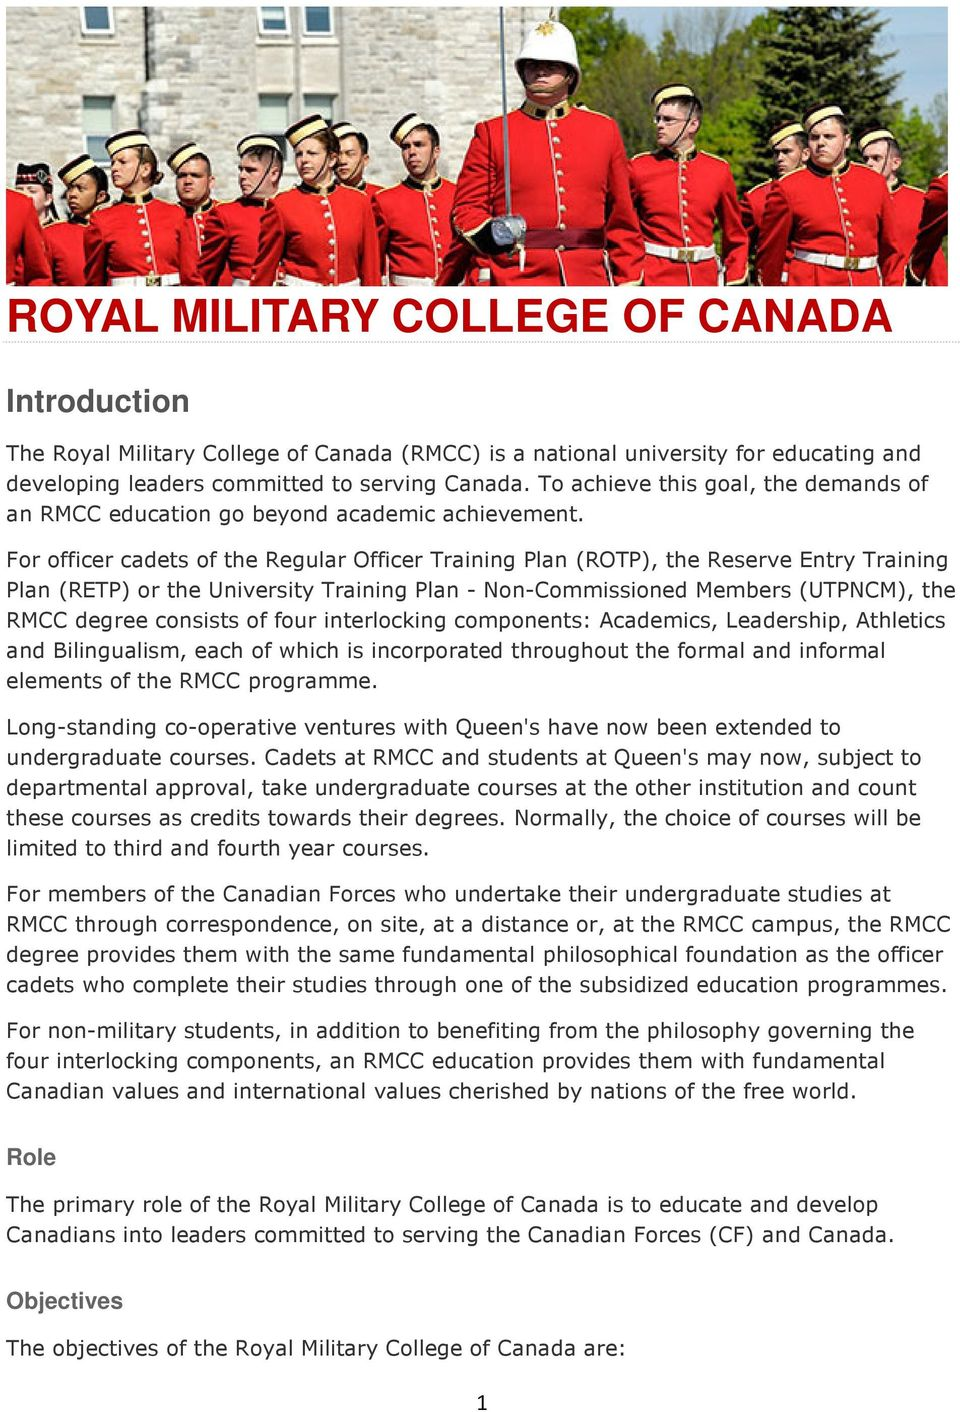 For officer cadets of the Regular Officer Training Plan (ROTP), the Reserve Entry Training Plan (RETP) or the University Training Plan - Non-Commissioned Members (UTPNCM), the RMCC degree consists of